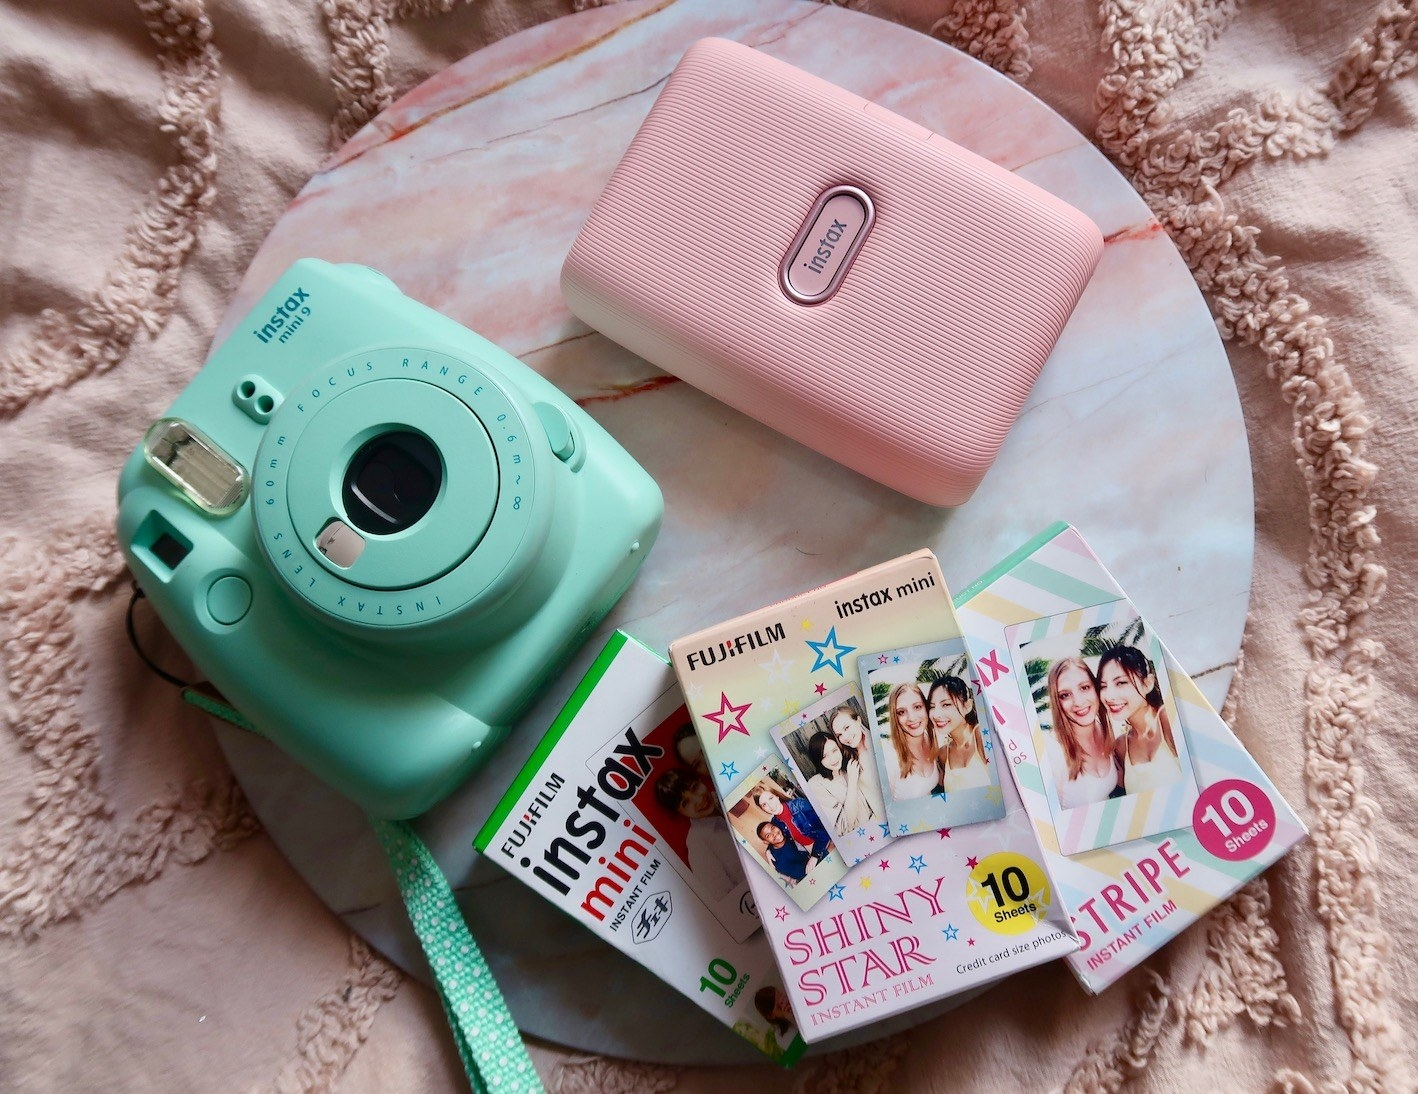 An instant camera, instant photo printer, and three packs of instant film on a surface